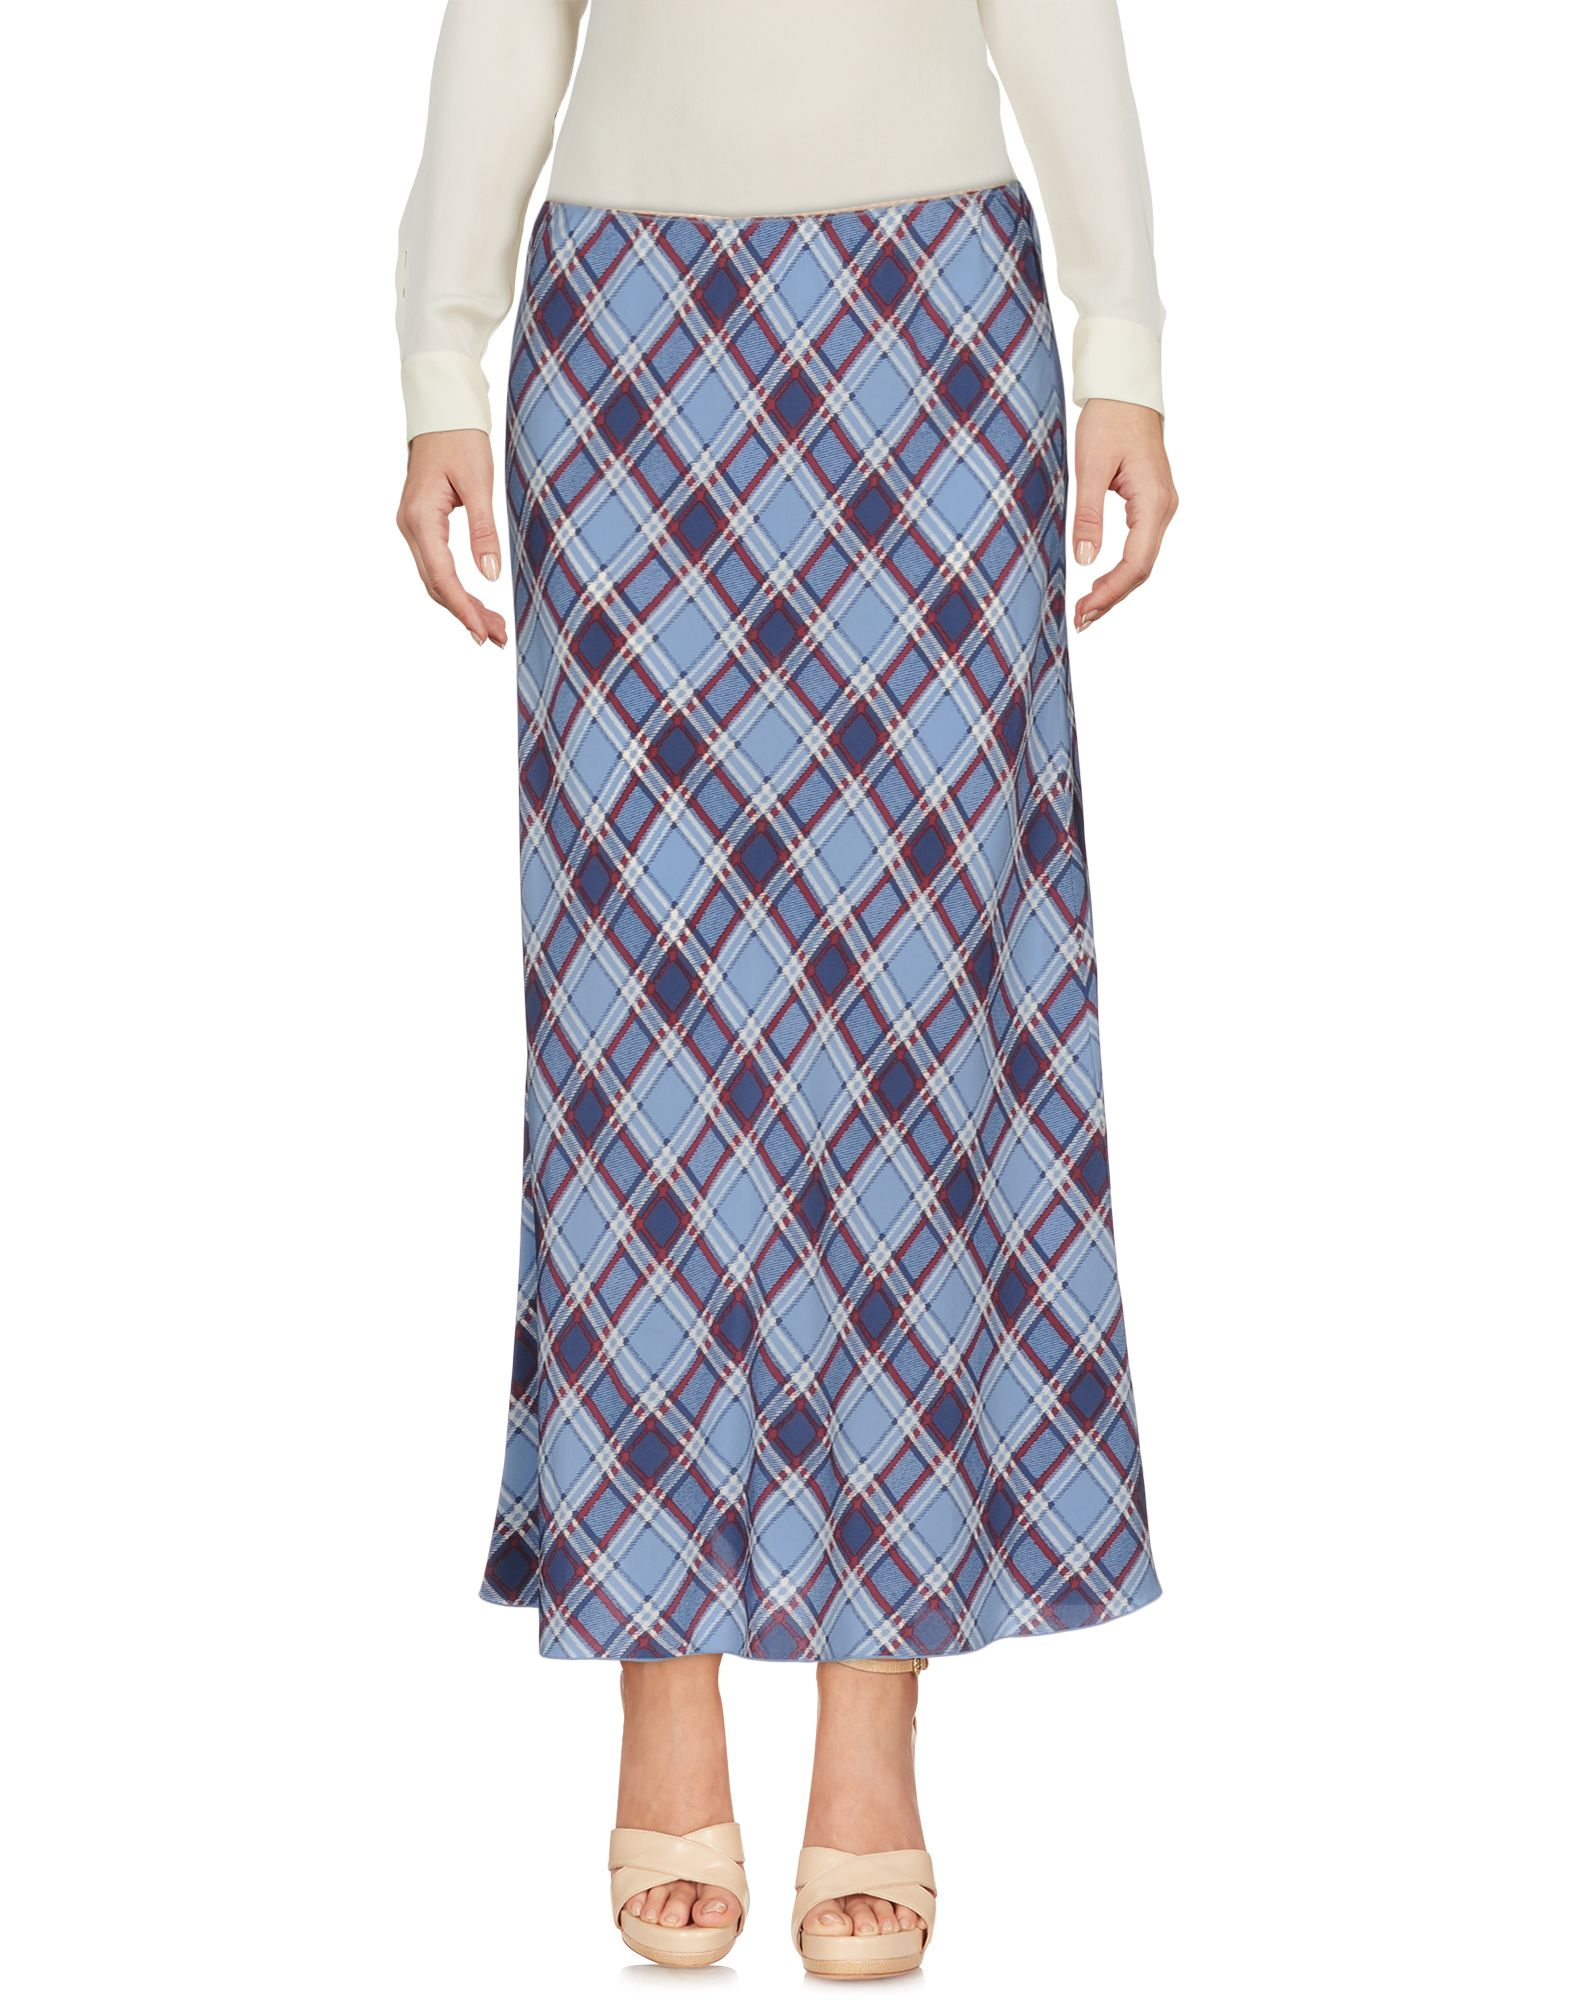 marc jacobs female marc jacobs 34 length skirts